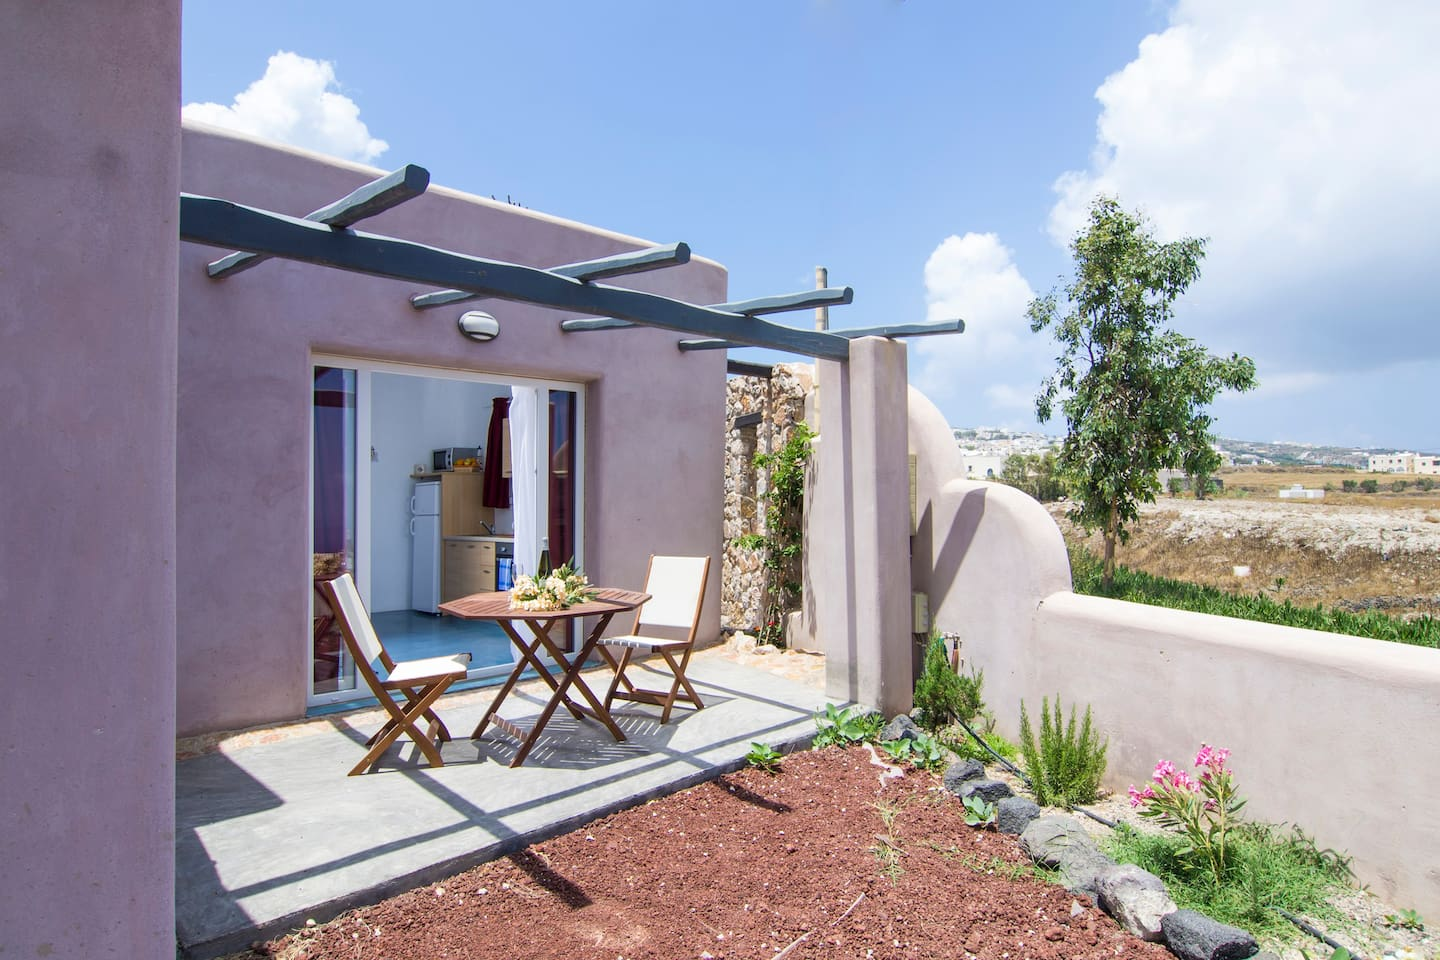 Thea-bungalows for 2 - 4 guest